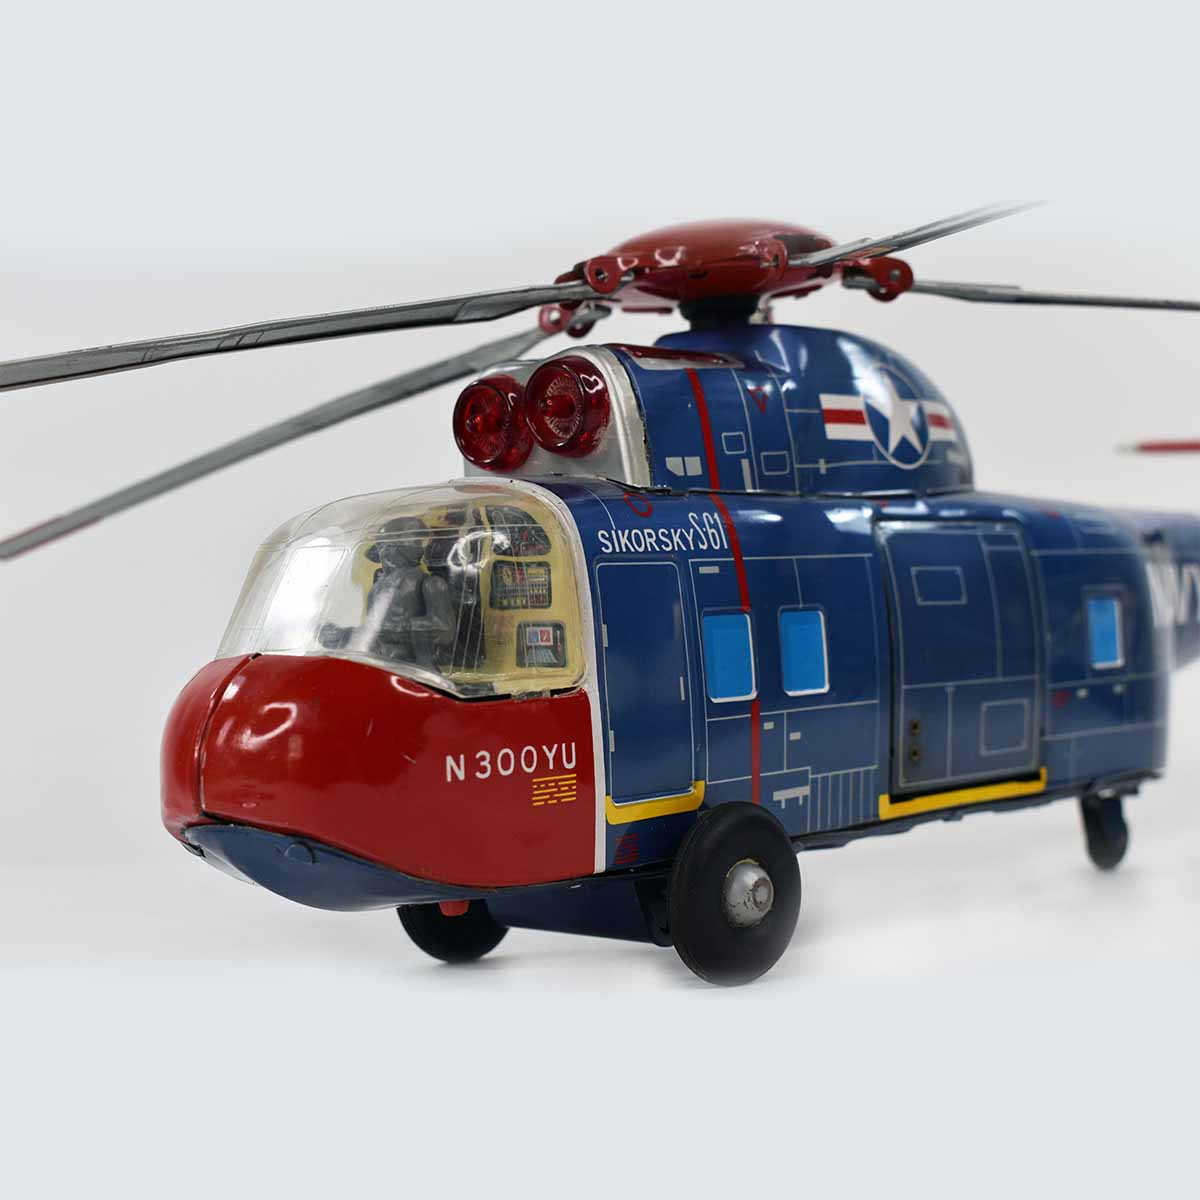 Yonezawa Sikorsky S61 Helicopter Battery Operated